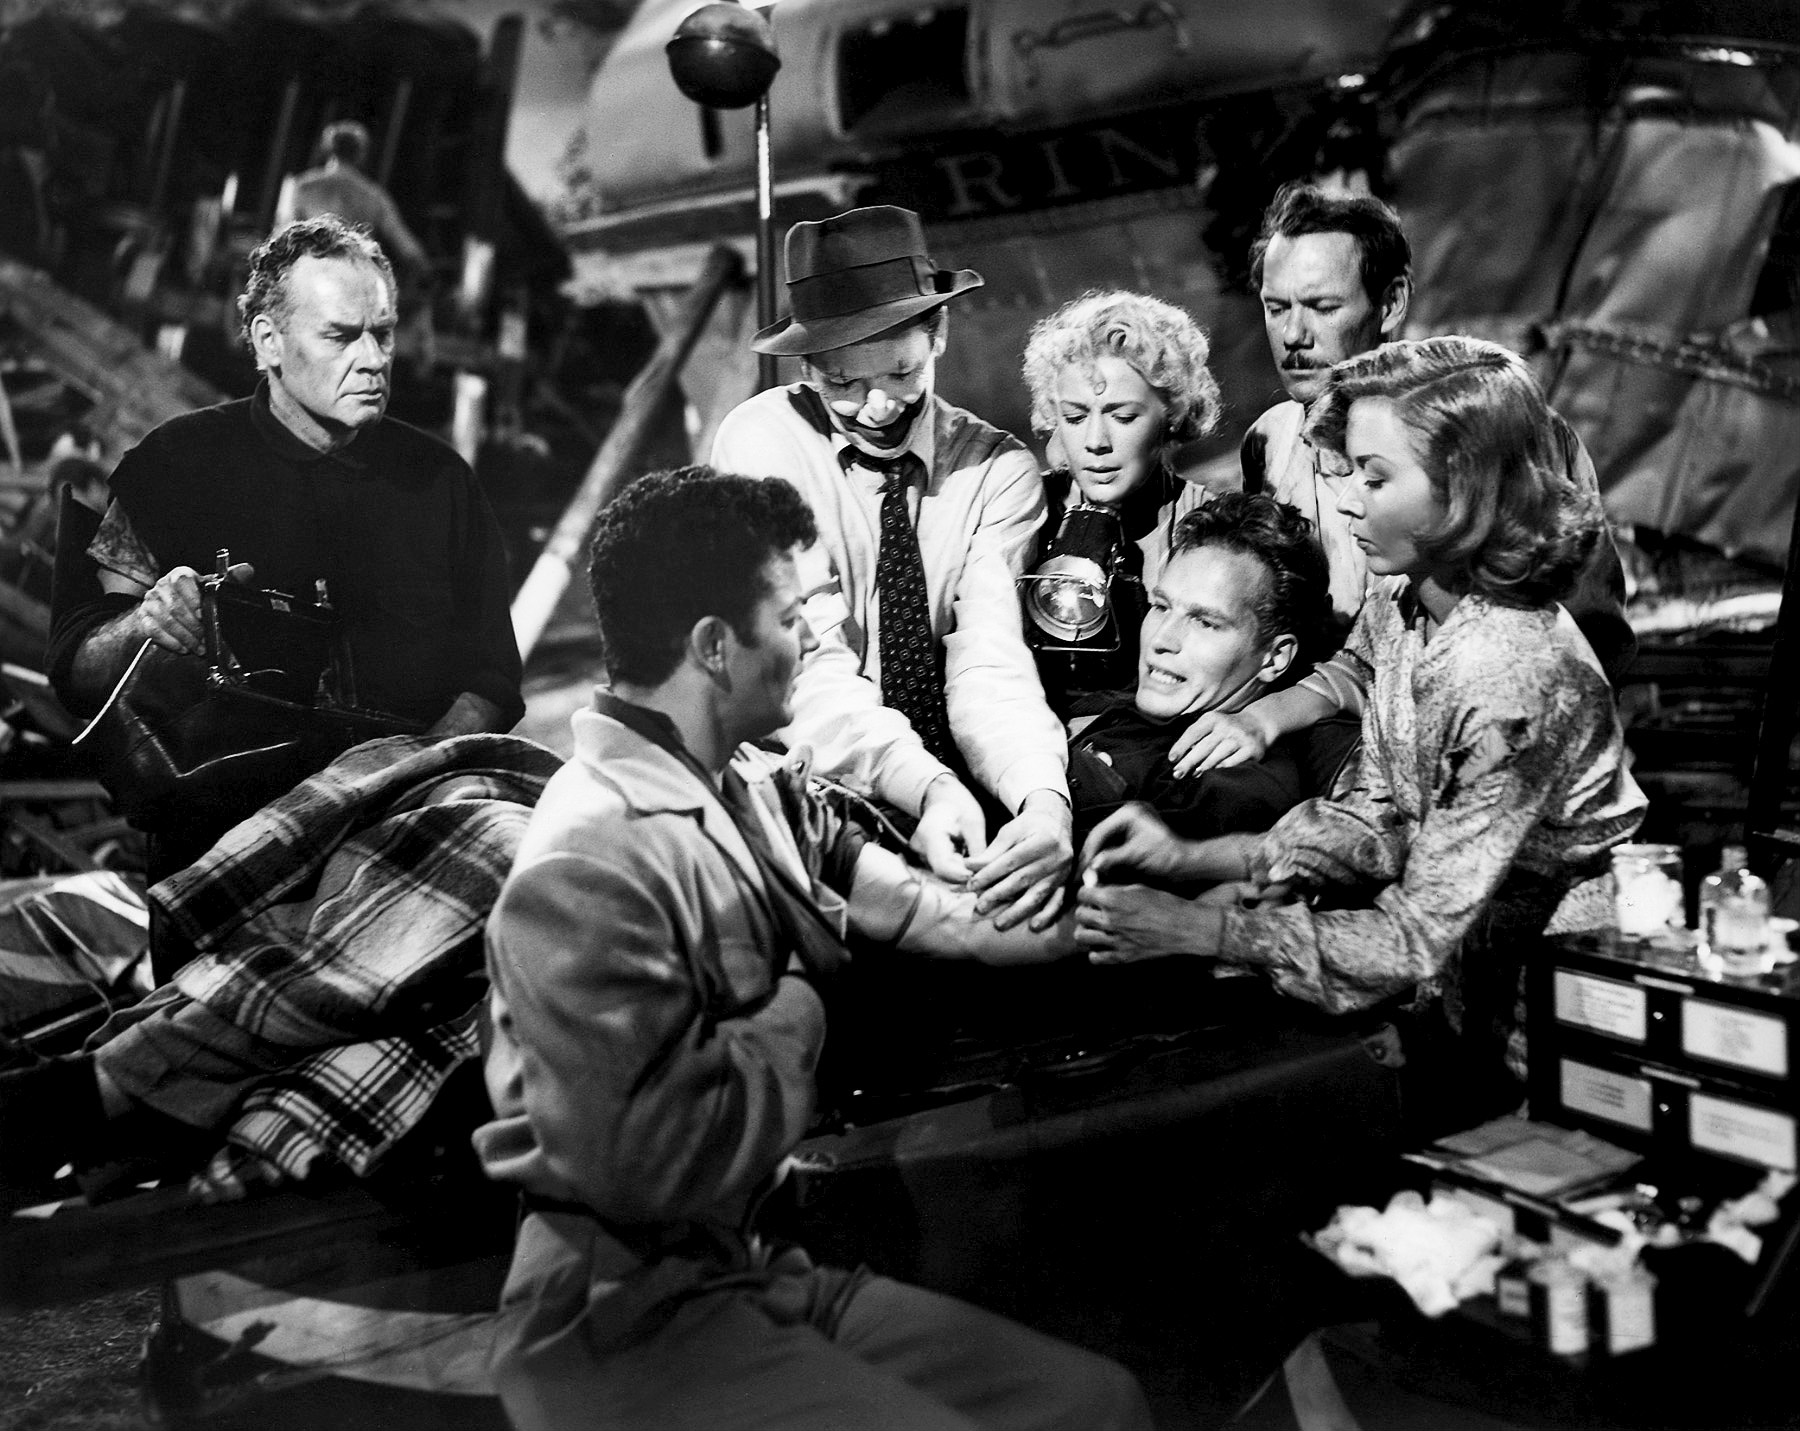 Charlton Heston in The Greatest Show on Earth with (L to R) Lane Chandler, Cornel Wilde, James Stewart, Betty Hutton, Charlton Heston, John Ridgely, Gloria Grahame